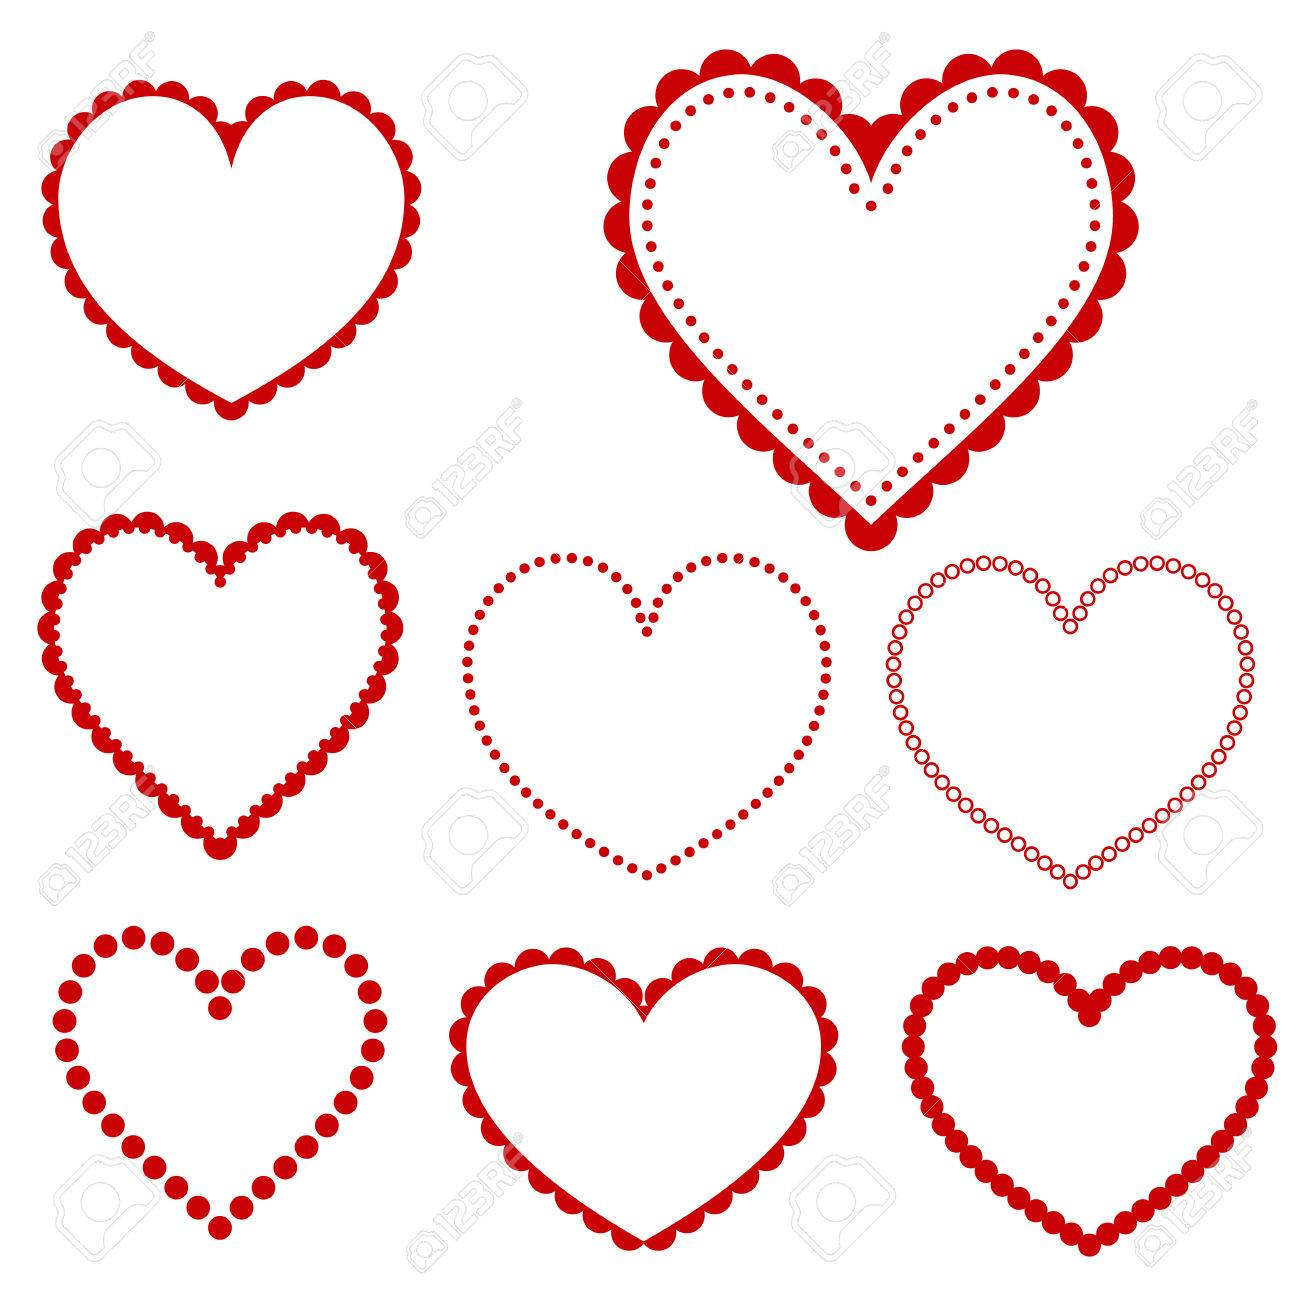 Collection Of Heart Frames - Vector Royalty Free Cliparts, Vectors ...